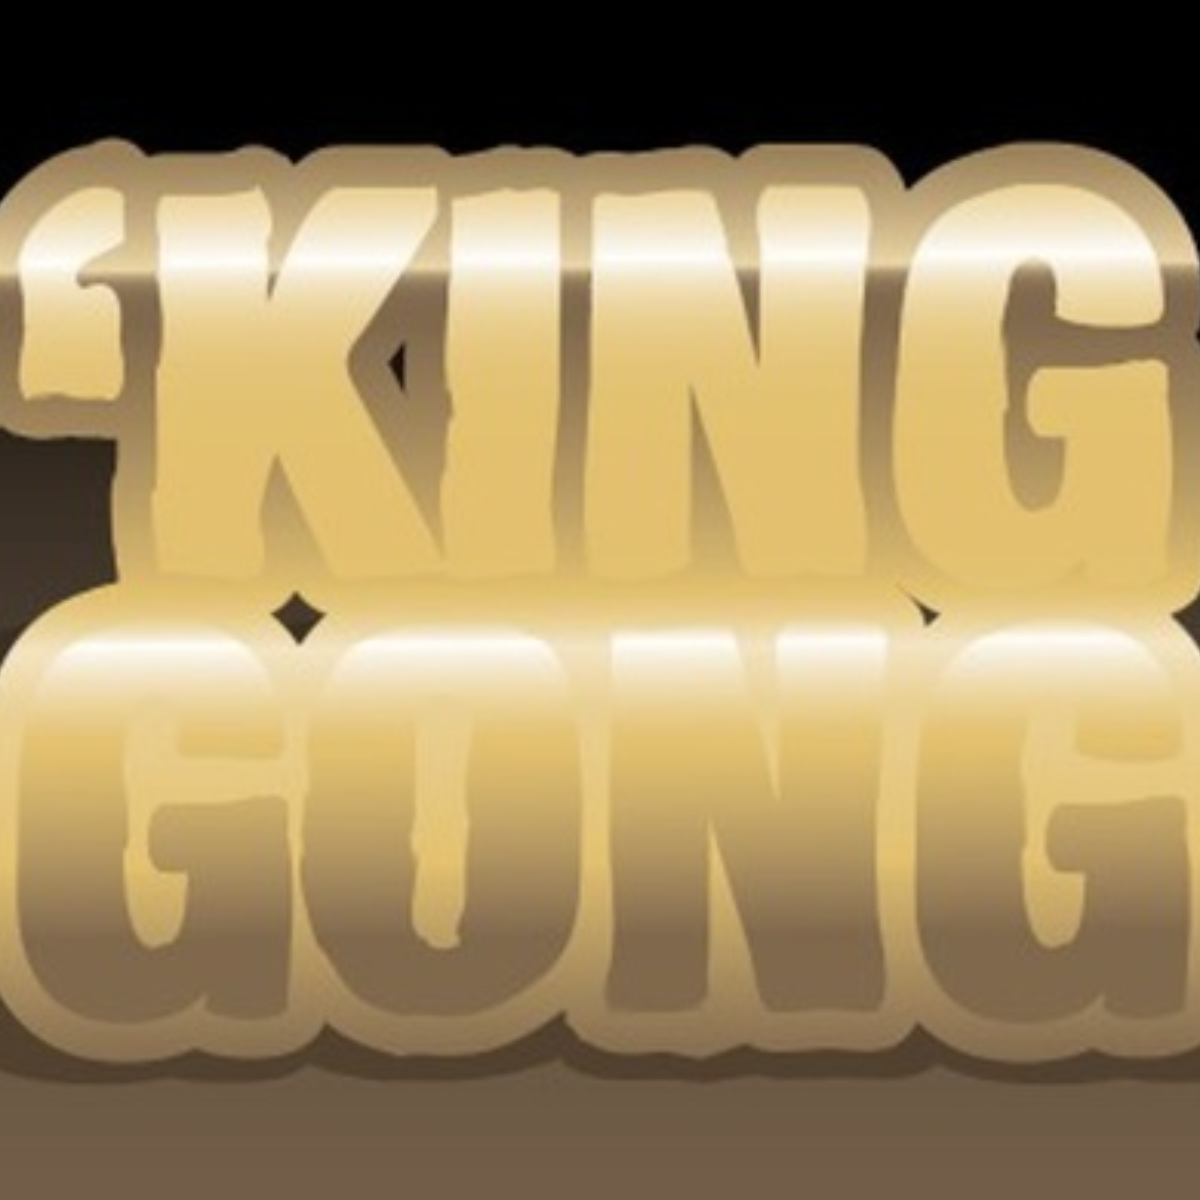 Manchester King Gong Images